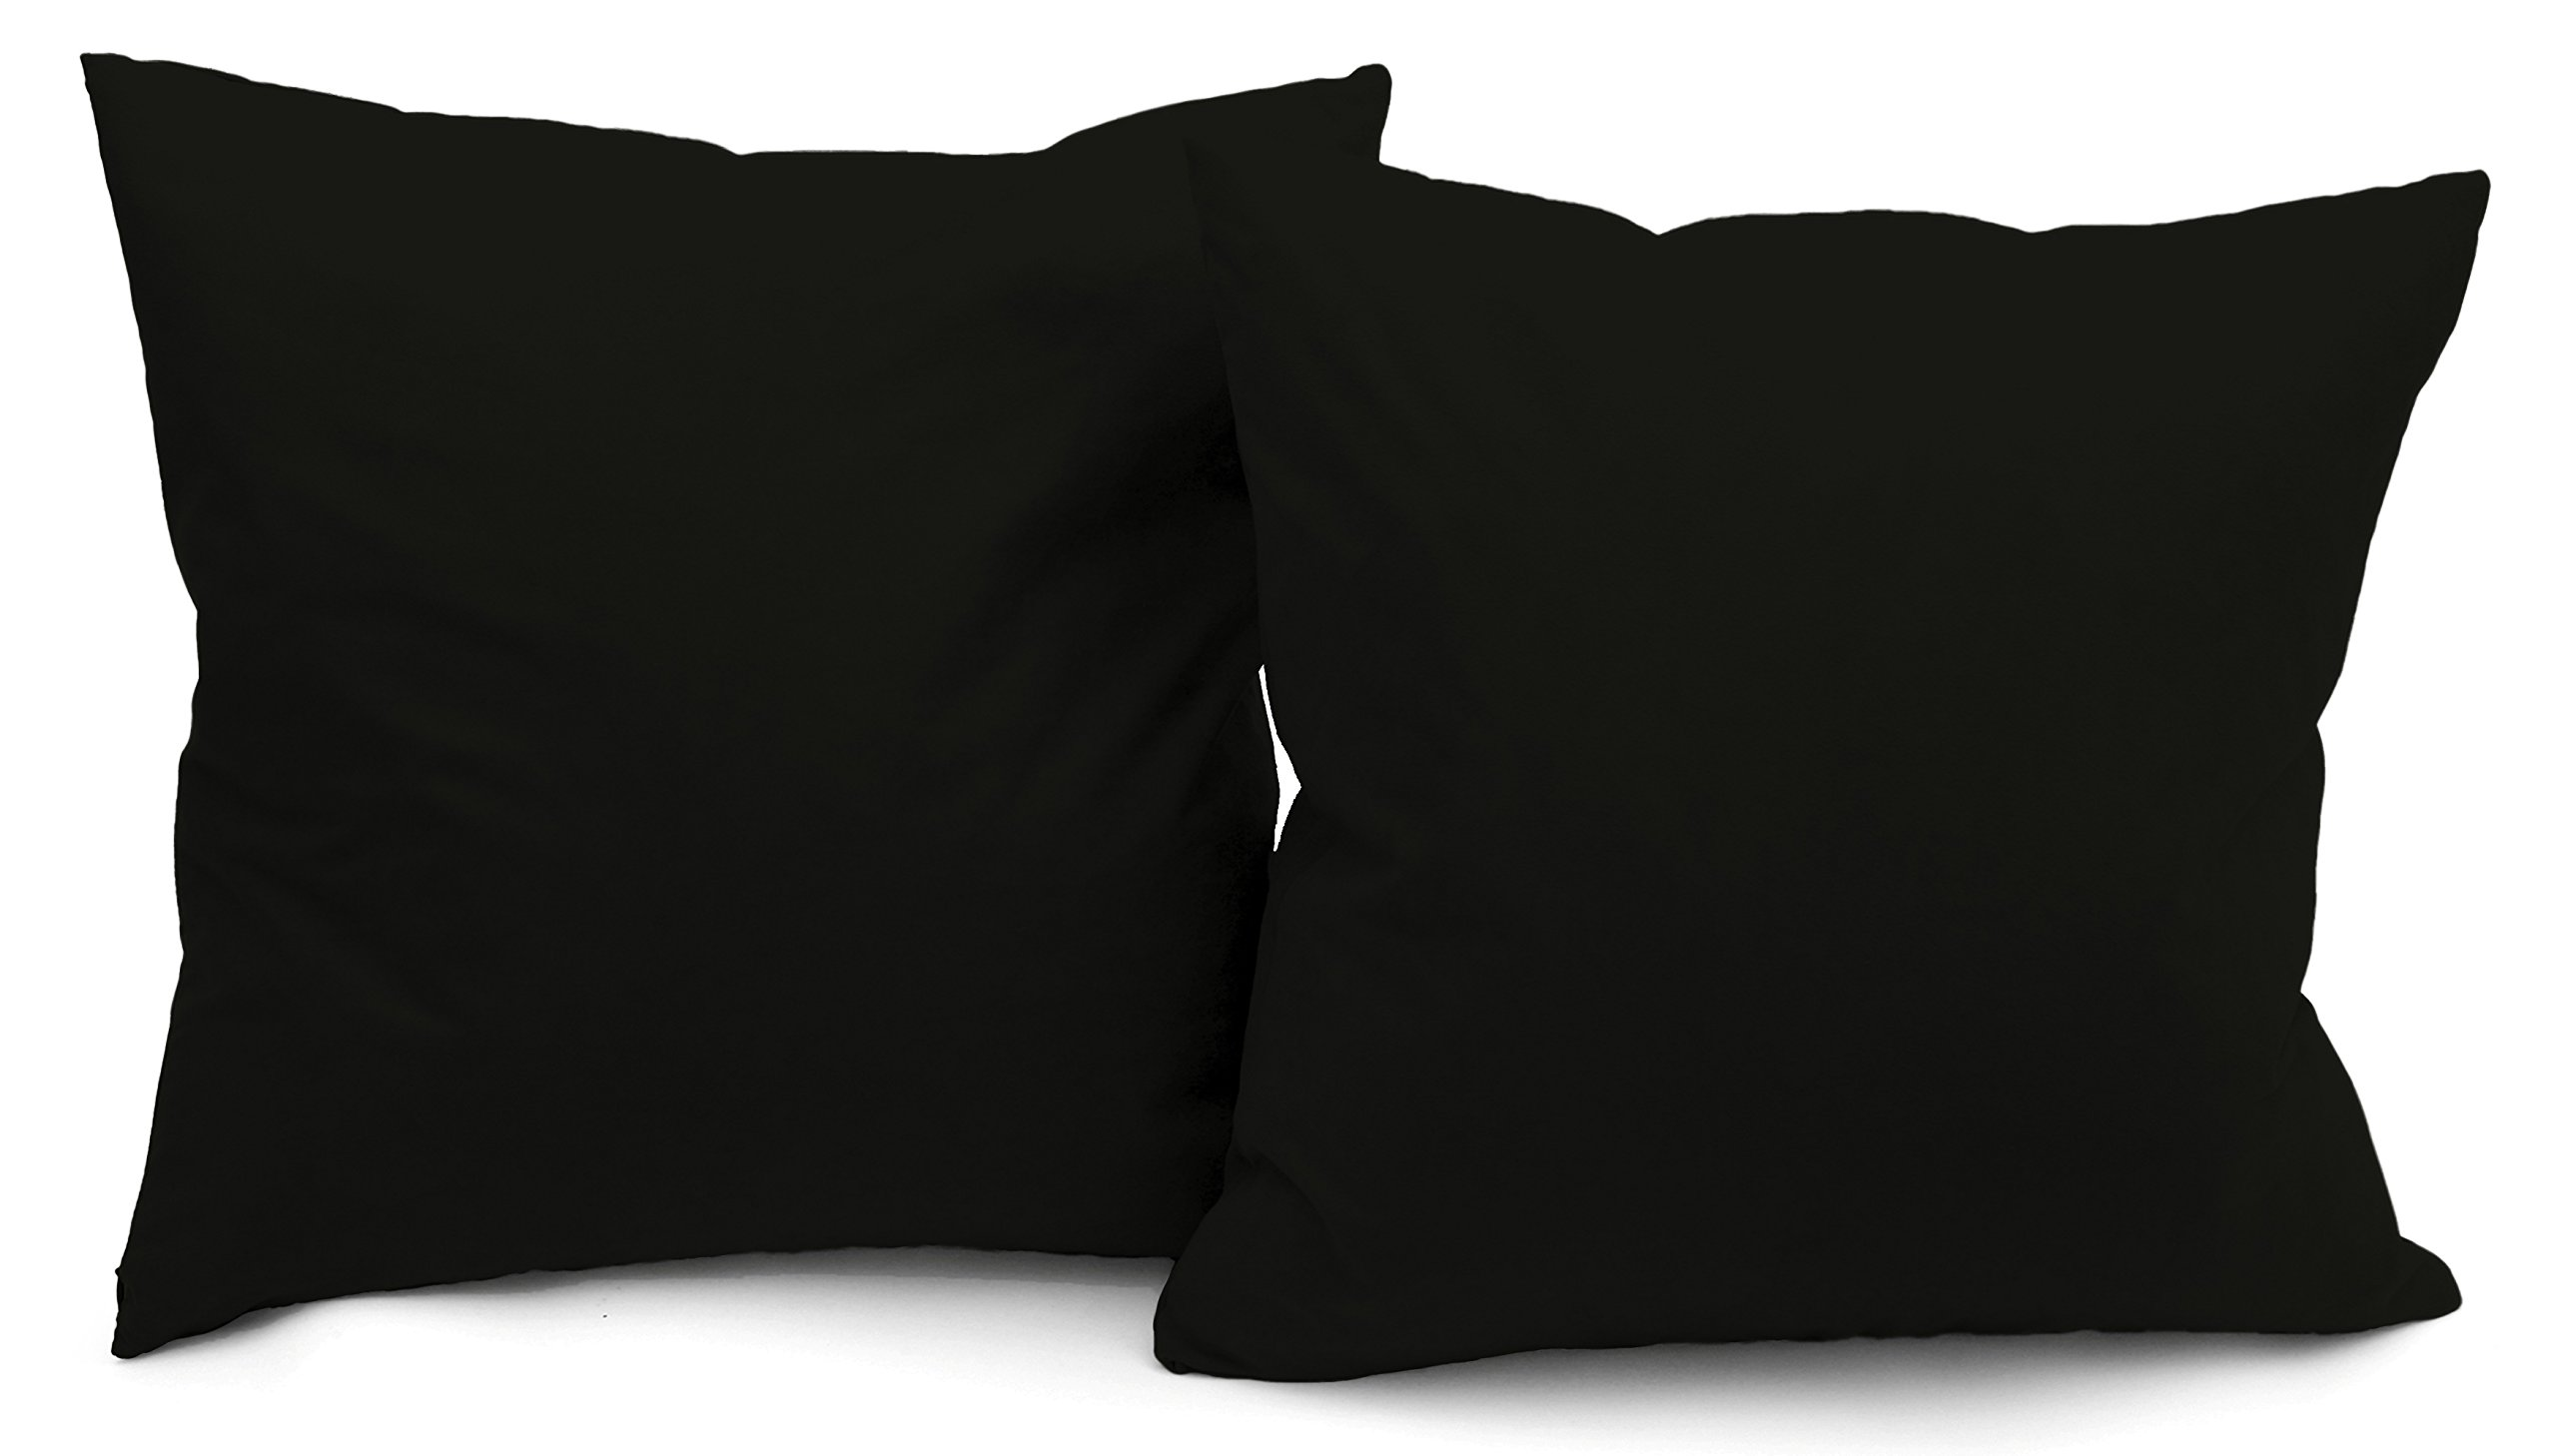 Deluxe Comfort Premium Microsuede - Down Feather Filled - Throw Pillow, Black - Pack of 2